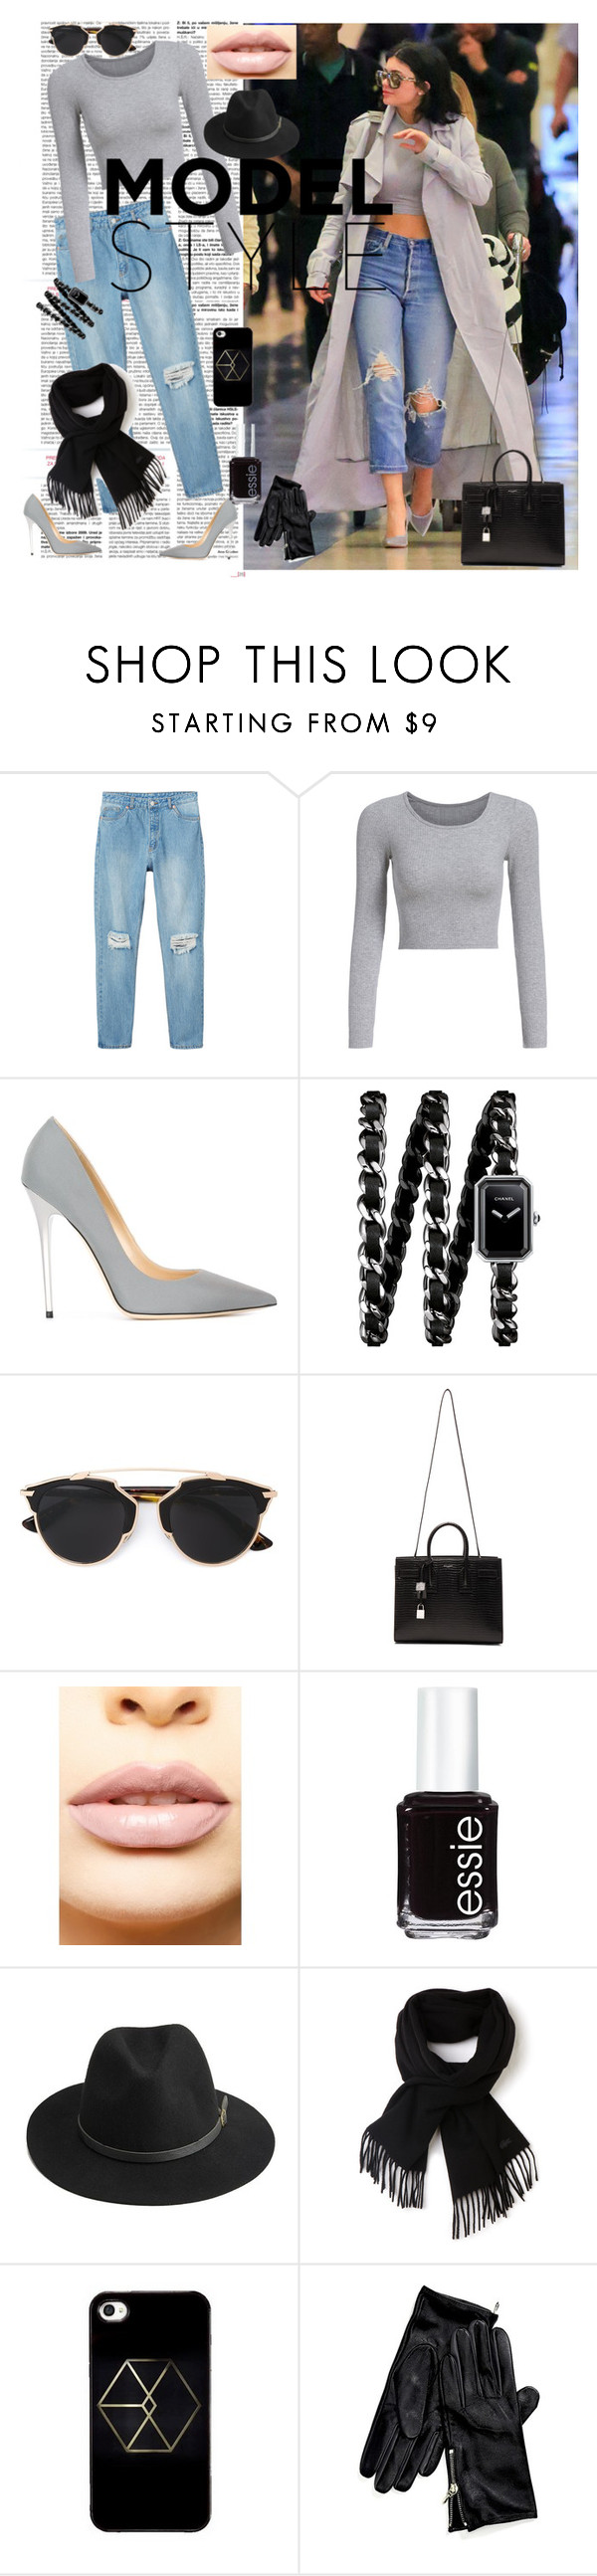 """Untitled #11"" by sejla-berbic ❤ liked on Polyvore featuring beauty, Monki, Jimmy Choo, Chanel, Christian Dior, Yves Saint Laurent, LASplash, Essie, BeckSöndergaard and Lacoste"